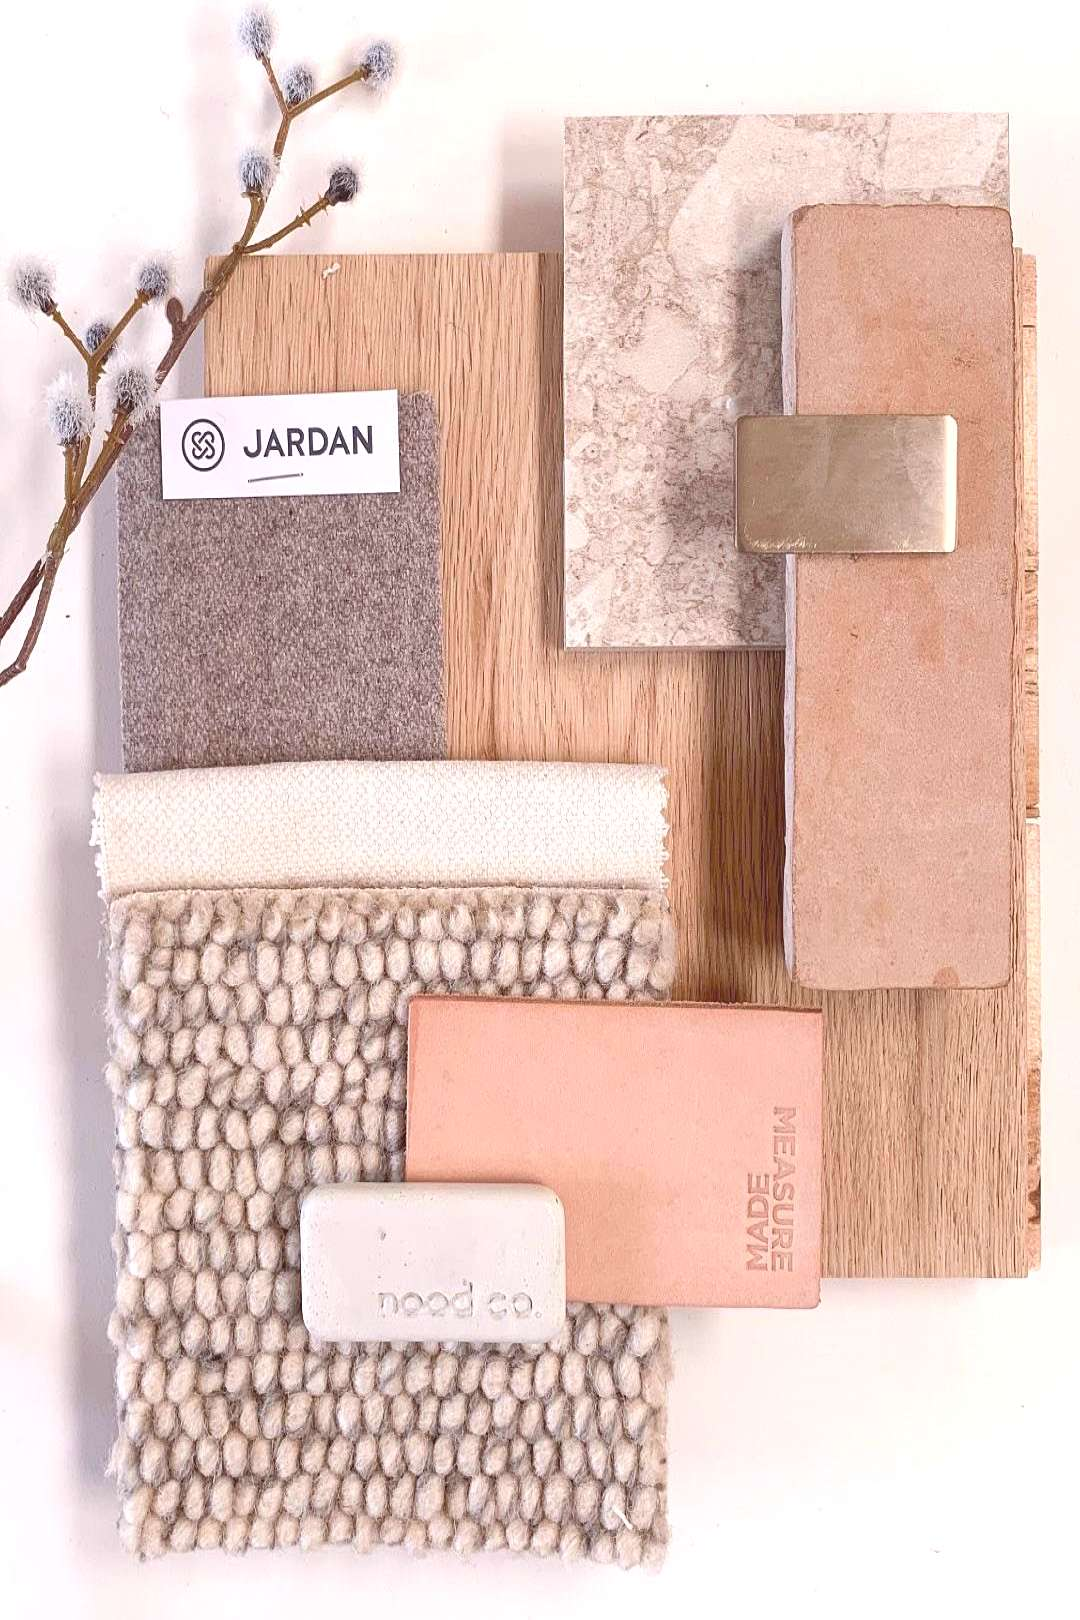 Take a look to the moodboards and feel the inspiration come in to your heart.